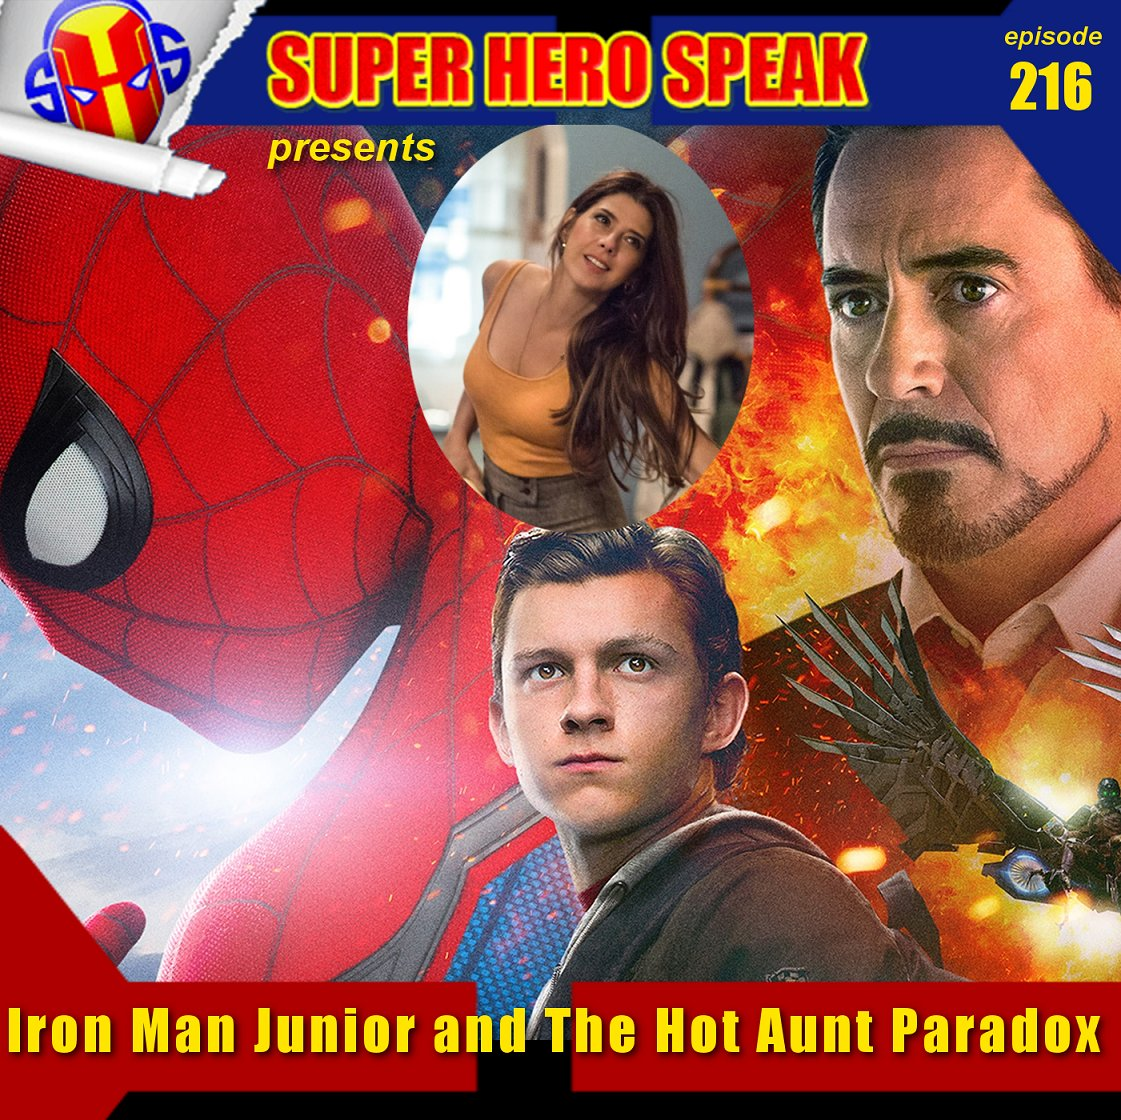 #216: Iron Man Junior and The Hot Aunt Paradox